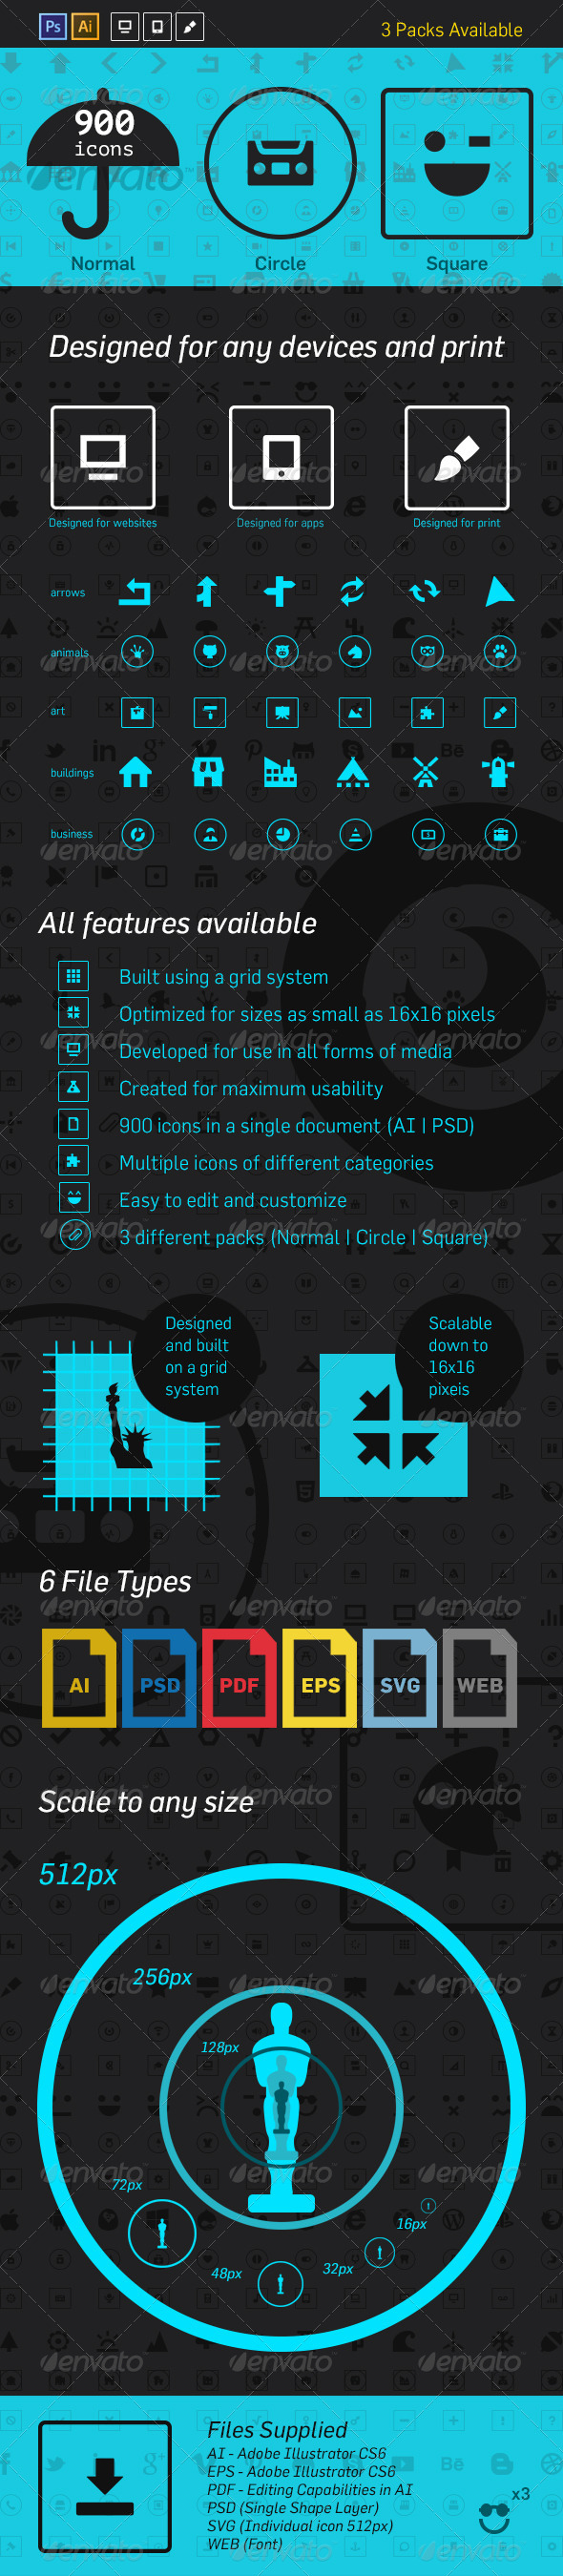 GraphicRiver Delicons 900 Vector Icons 8283498